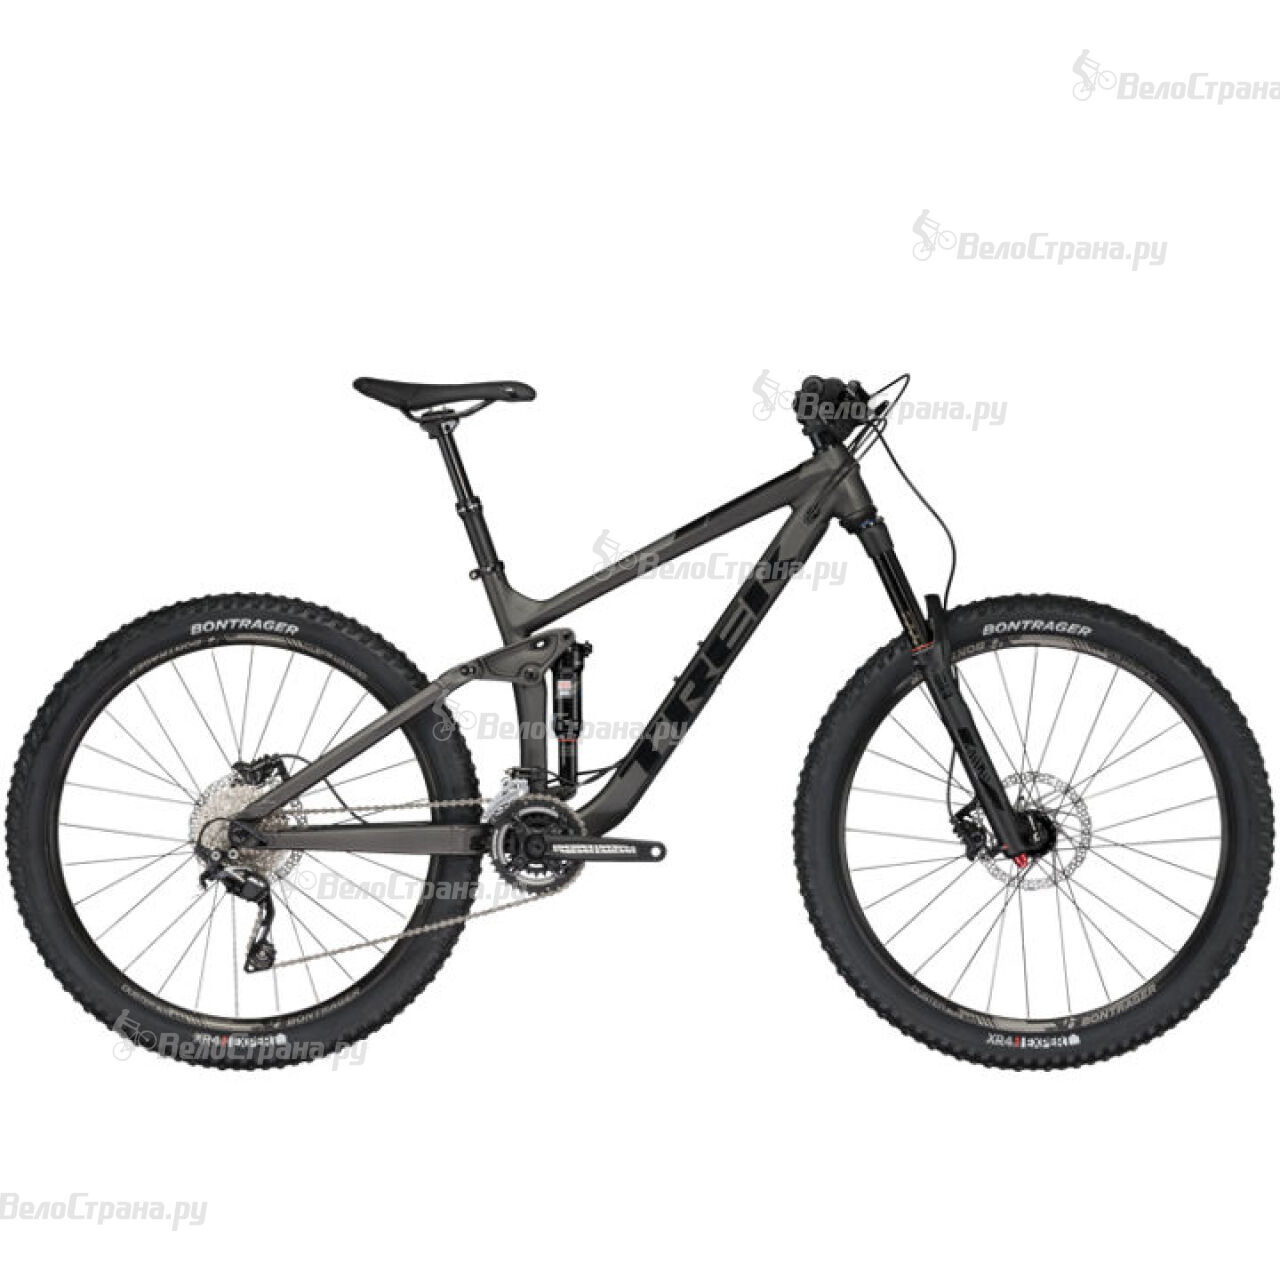 Велосипед Trek Remedy 7 27.5 (2017) велосипед trek remedy 7 27 5 2016